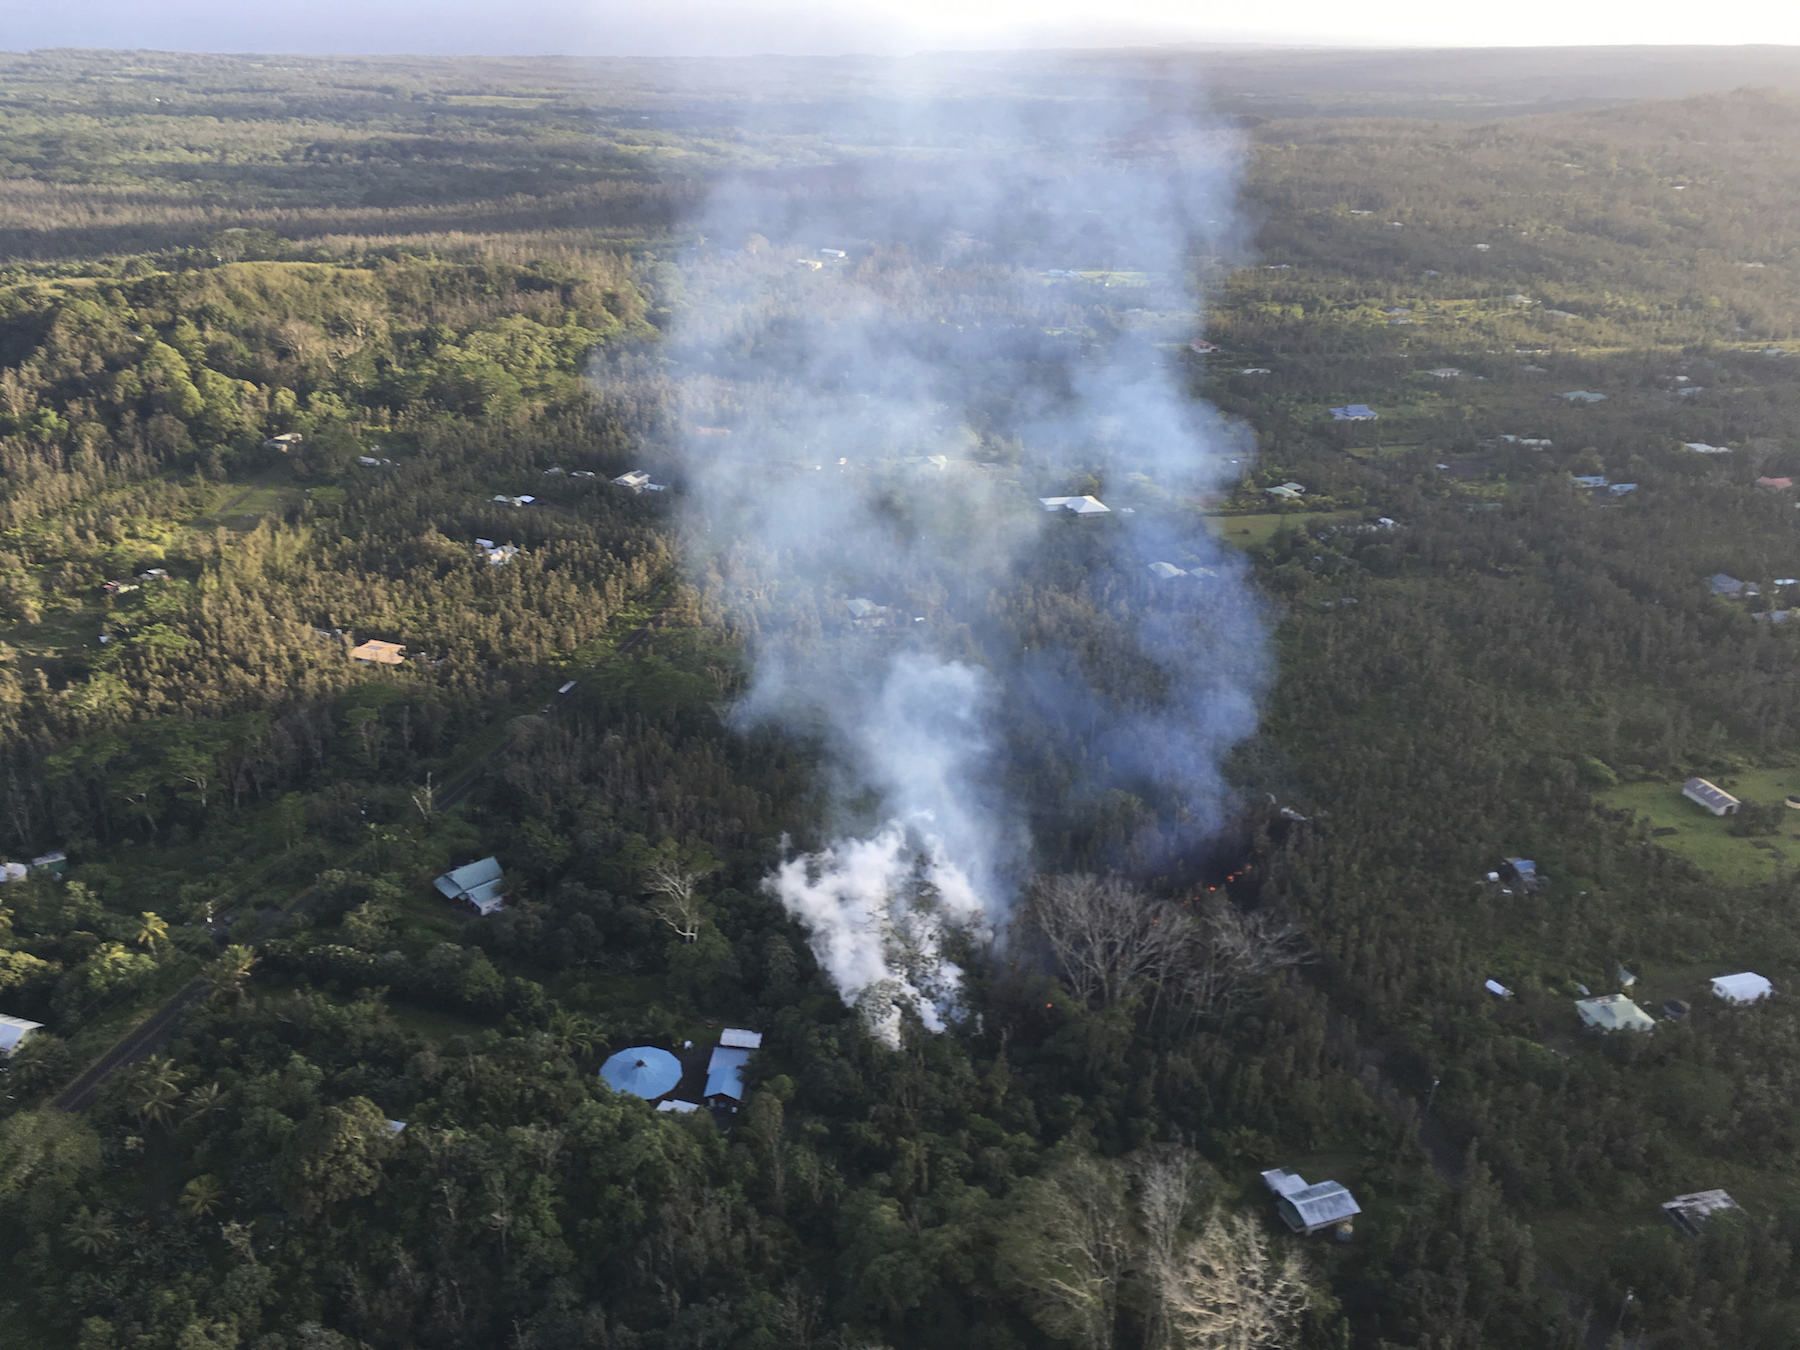 "<div class=""meta image-caption""><div class=""origin-logo origin-image ap""><span>AP</span></div><span class=""caption-text"">Lava is shown burning in Leilani Estates subdivision near the town of Pahoa on Hawaii'€™s Big Island. (USGS/AP)</span></div>"